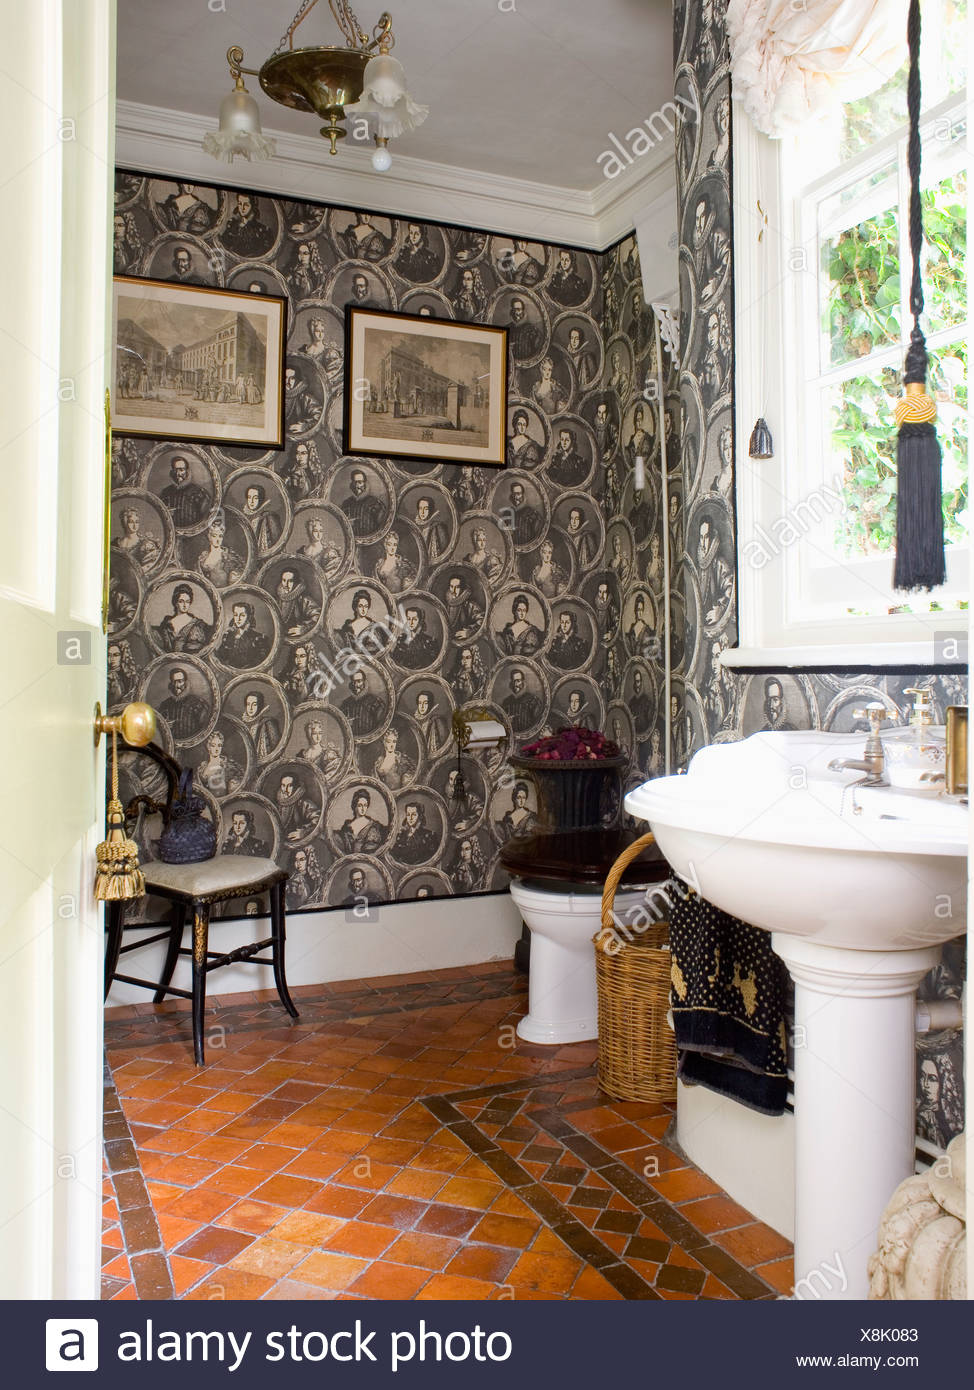 Etonnant Black+white Figurative Wallpaper In Traditional Bathroom With Quarry Tiled  Floor And White Pedestal Basin